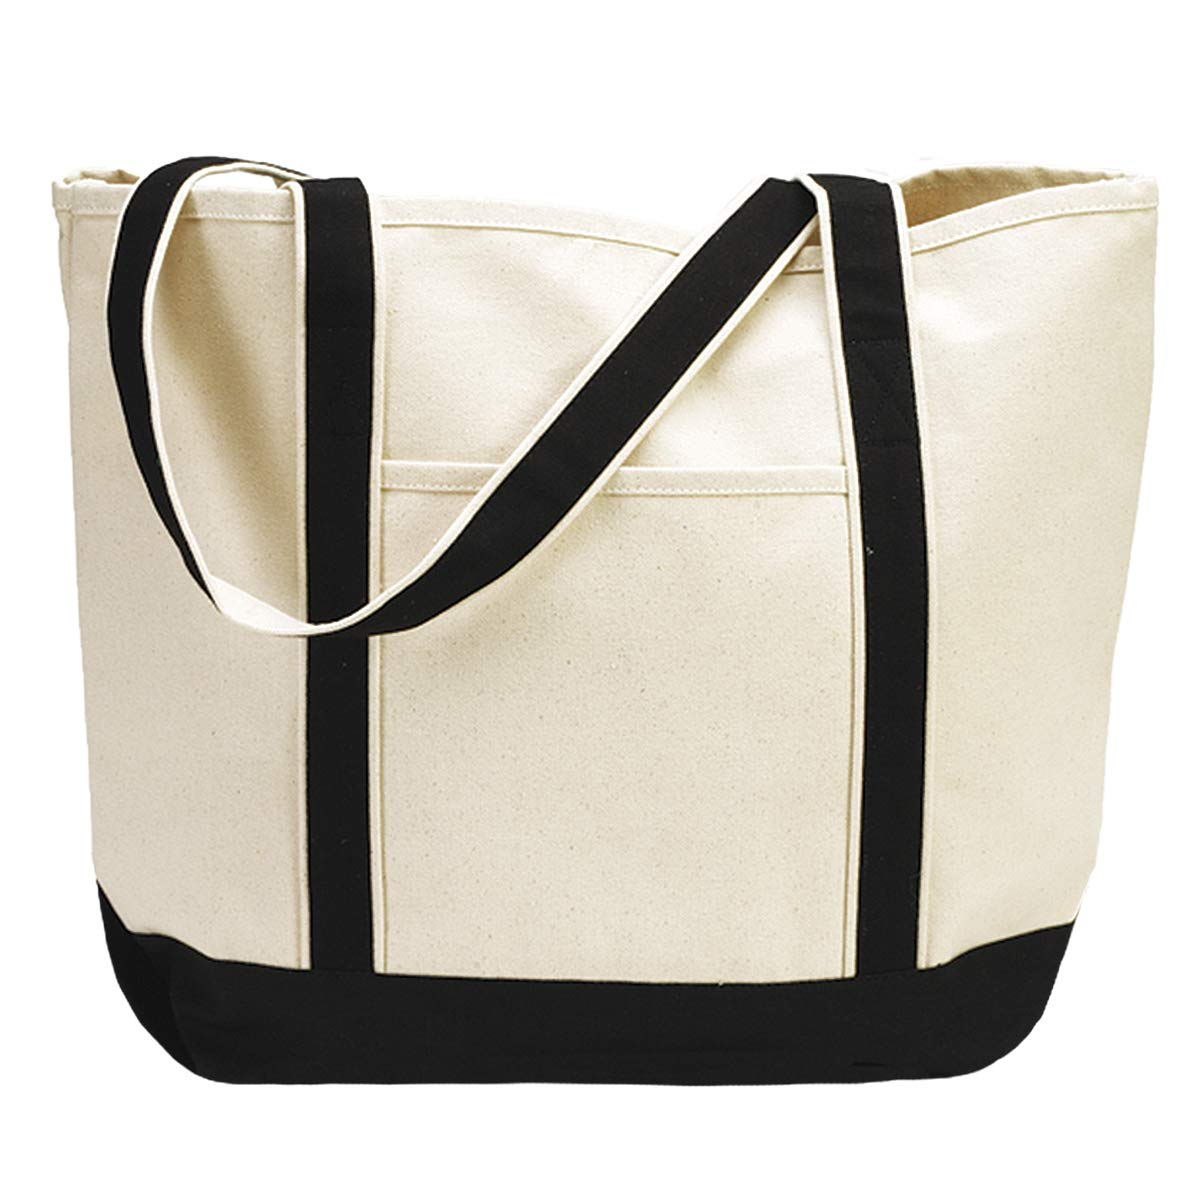 """4f213f37a Amazon.com: Heavy Duty Large Canvas Tote Bag 22"""" Shoulder Beach and  Shopping Bag for Groceries or to Decorate: Shoes"""